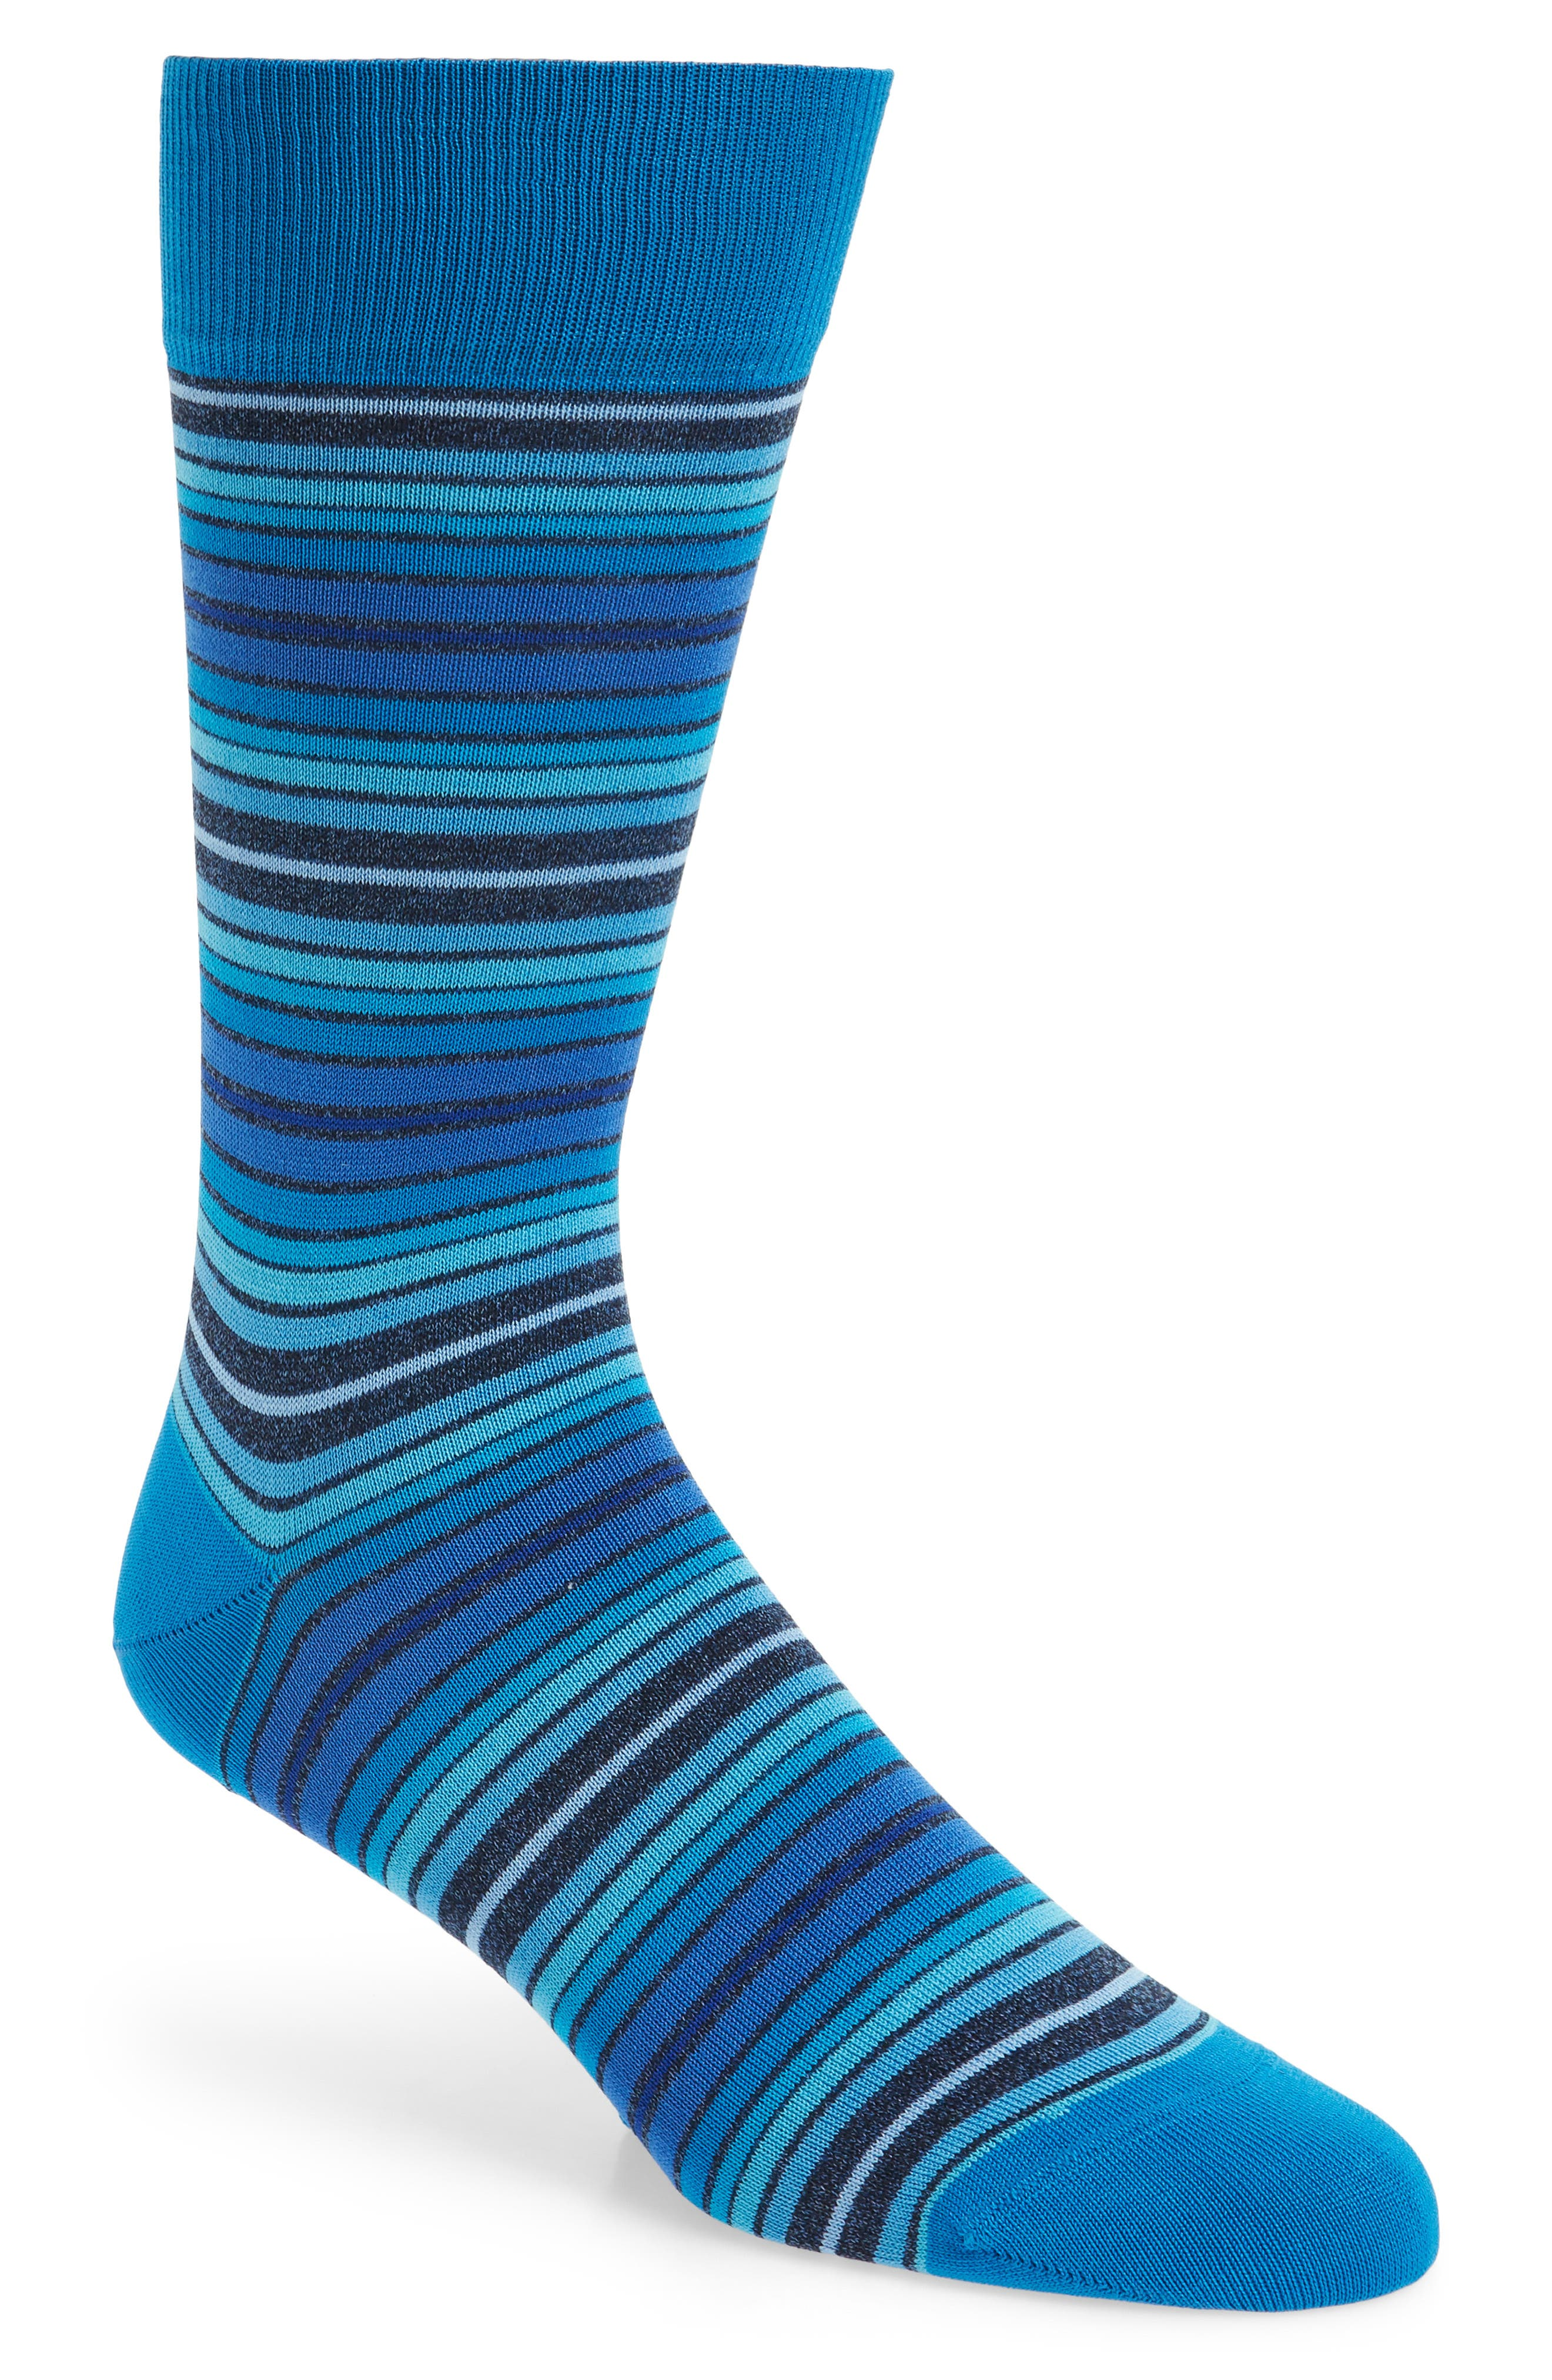 Cotton Blend Socks,                         Main,                         color,